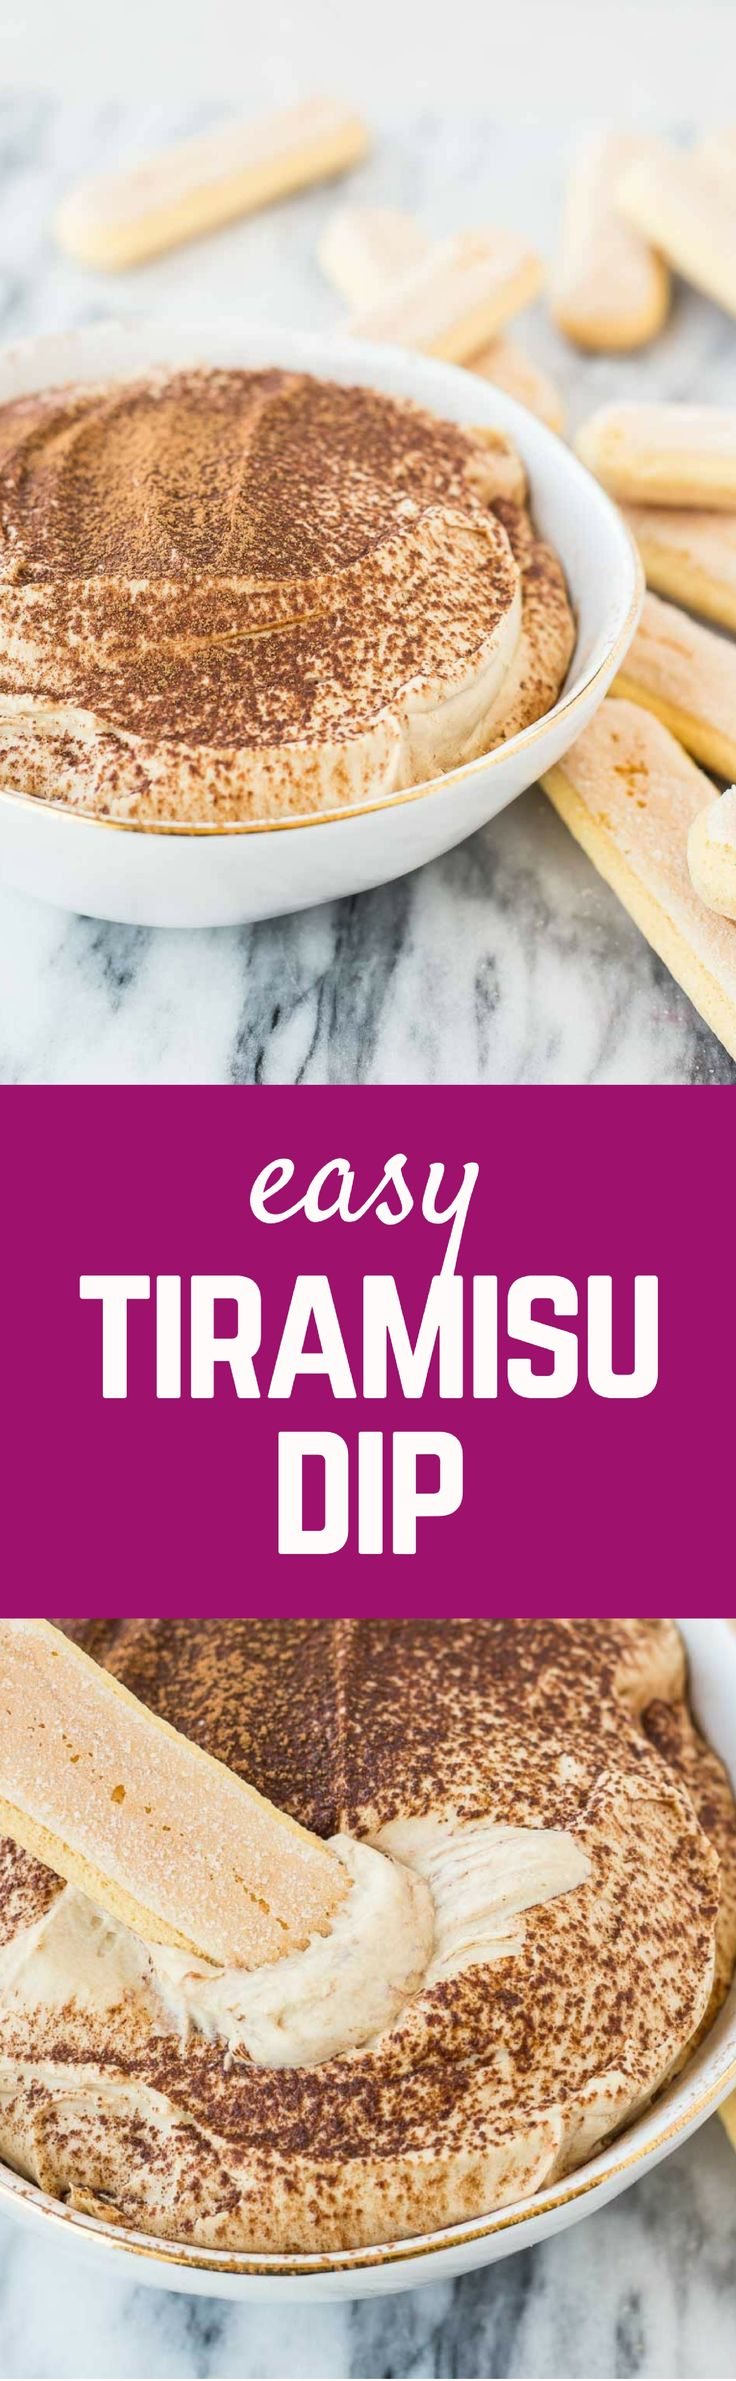 With all the great taste of tiramisu, but in an easy, fun, dip-able format, this tiramisu dip is going to become an instant party favorite! Get the easy dessert recipe on RachelCooks.com! #sponsored @Milk